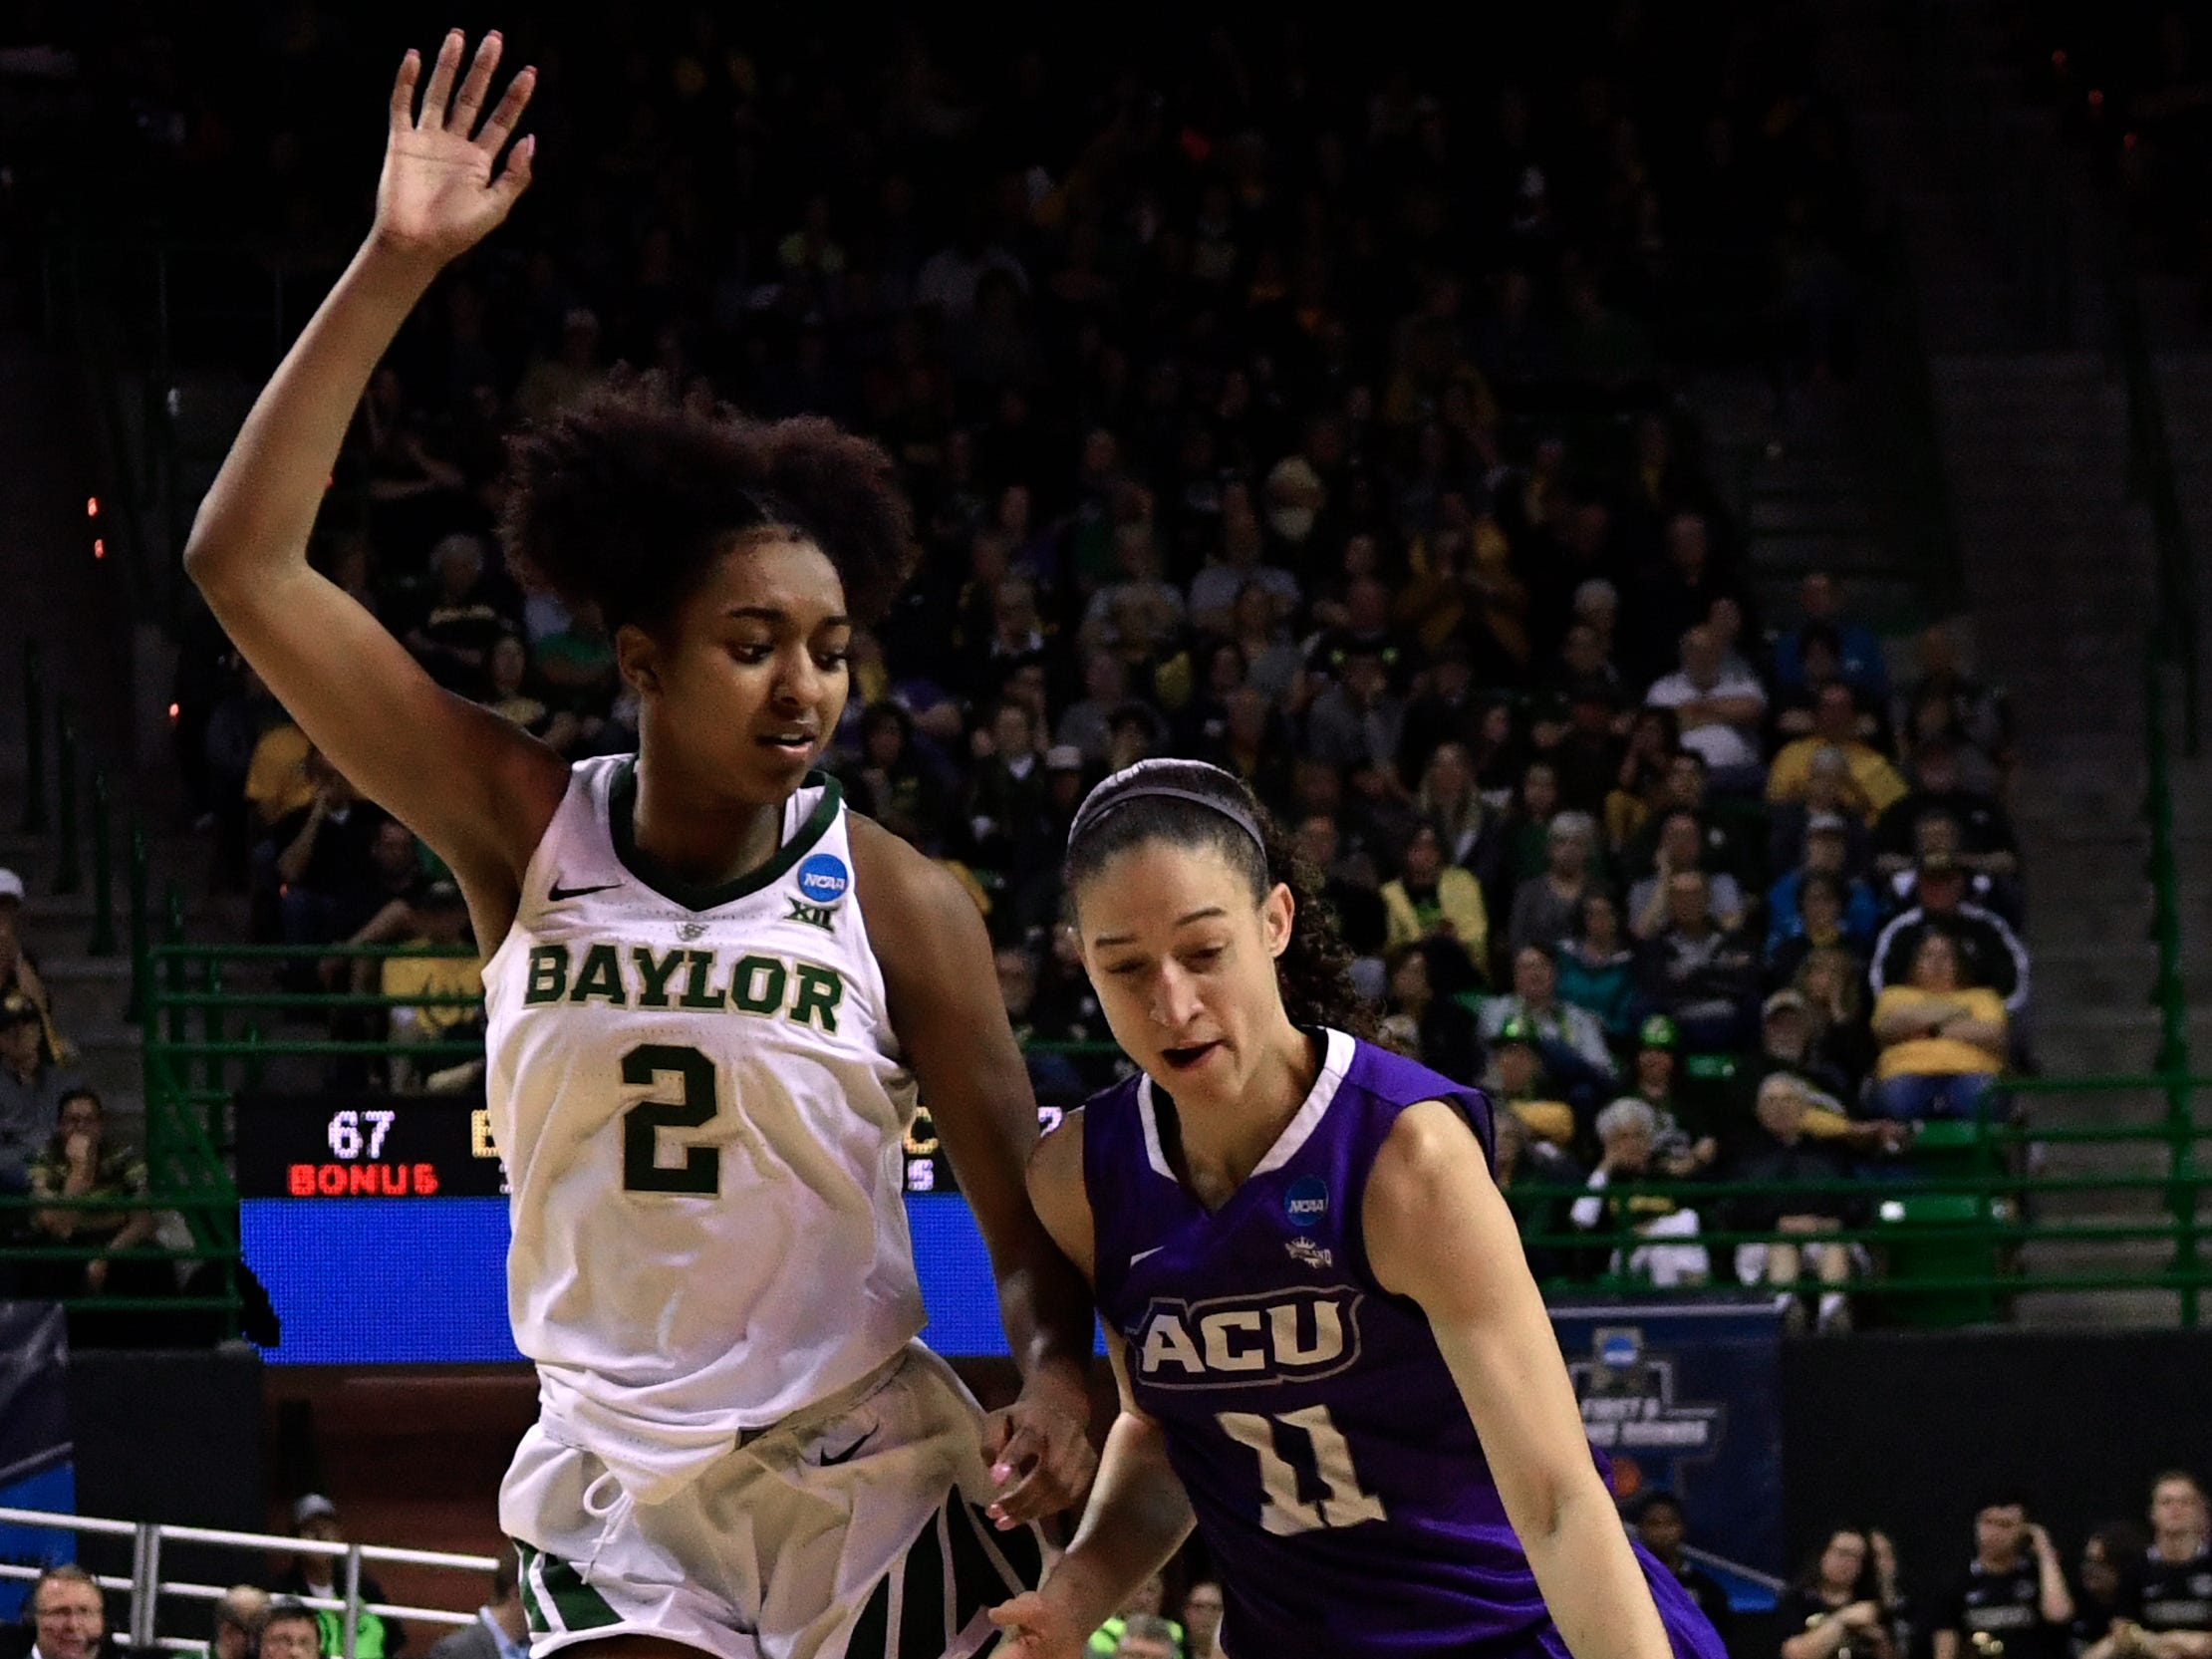 ACU's Sara Williamson is guarded by Baylor's Didi Richards during Saturday's NCAA Tournament women's round 1 basketball game March 23, 2019. Baylor defeated Abilene Christian University, 95-38.